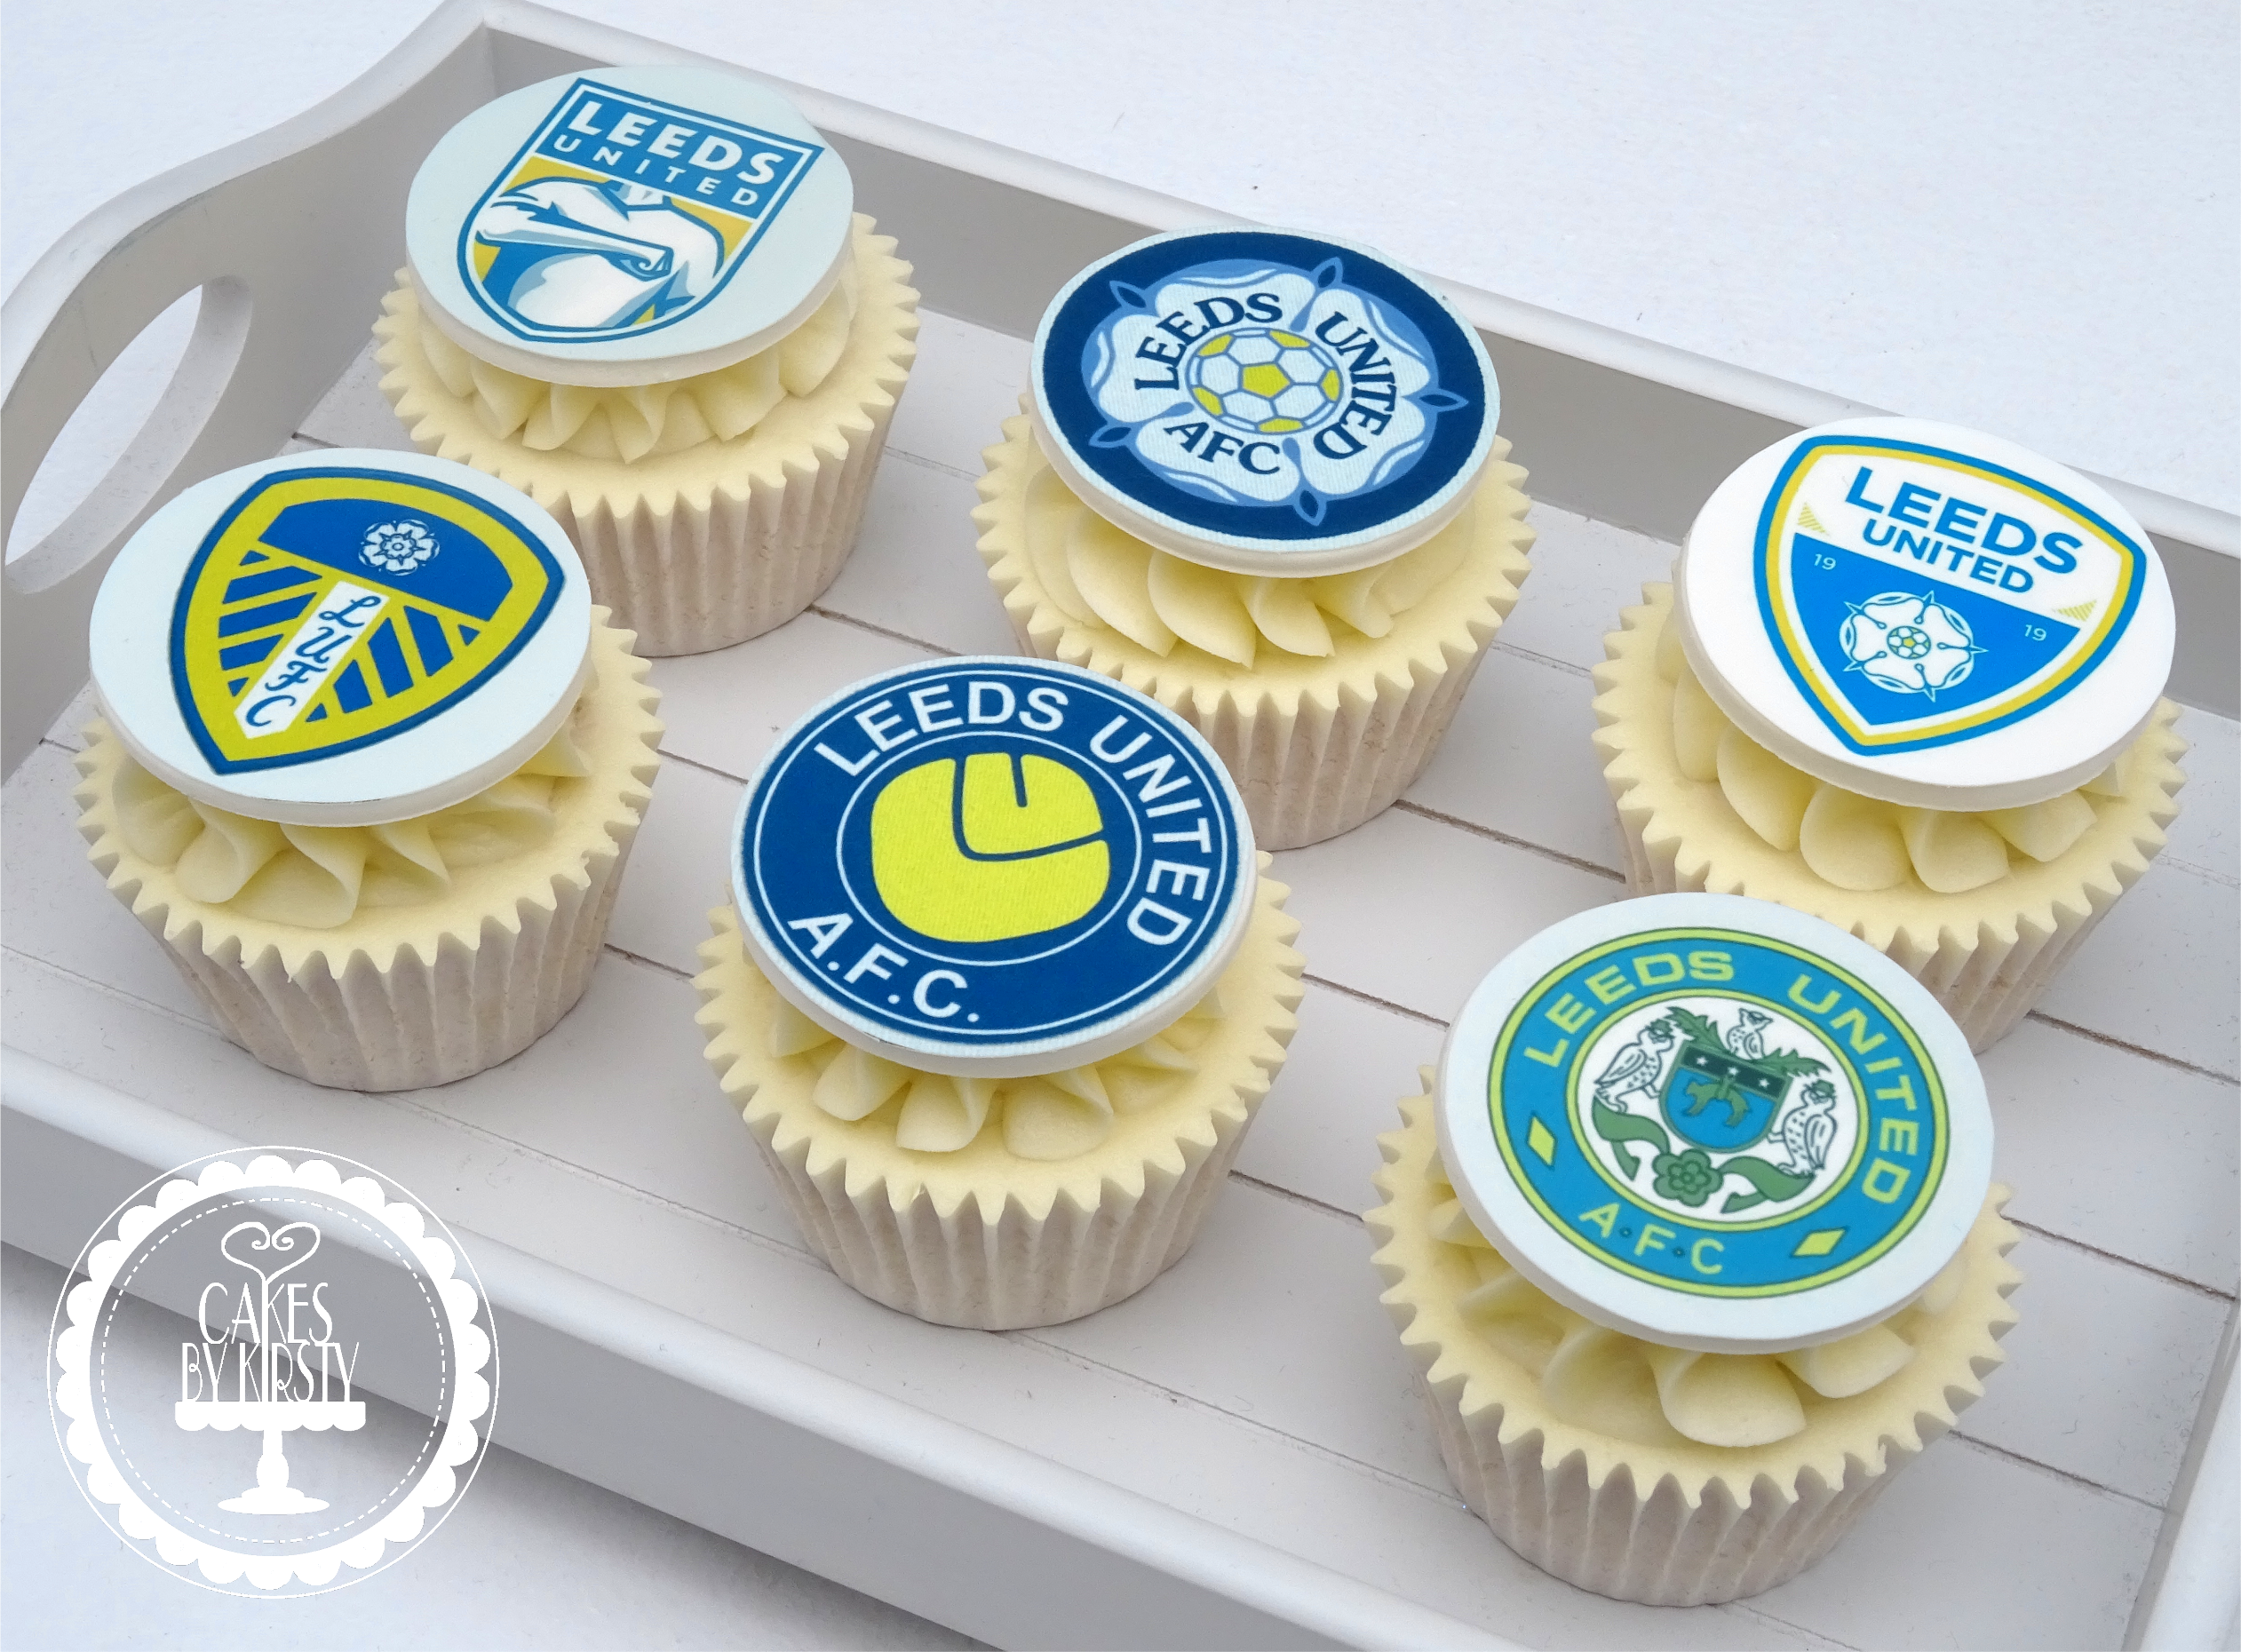 Leeds United Cupcakes (Edible Image)